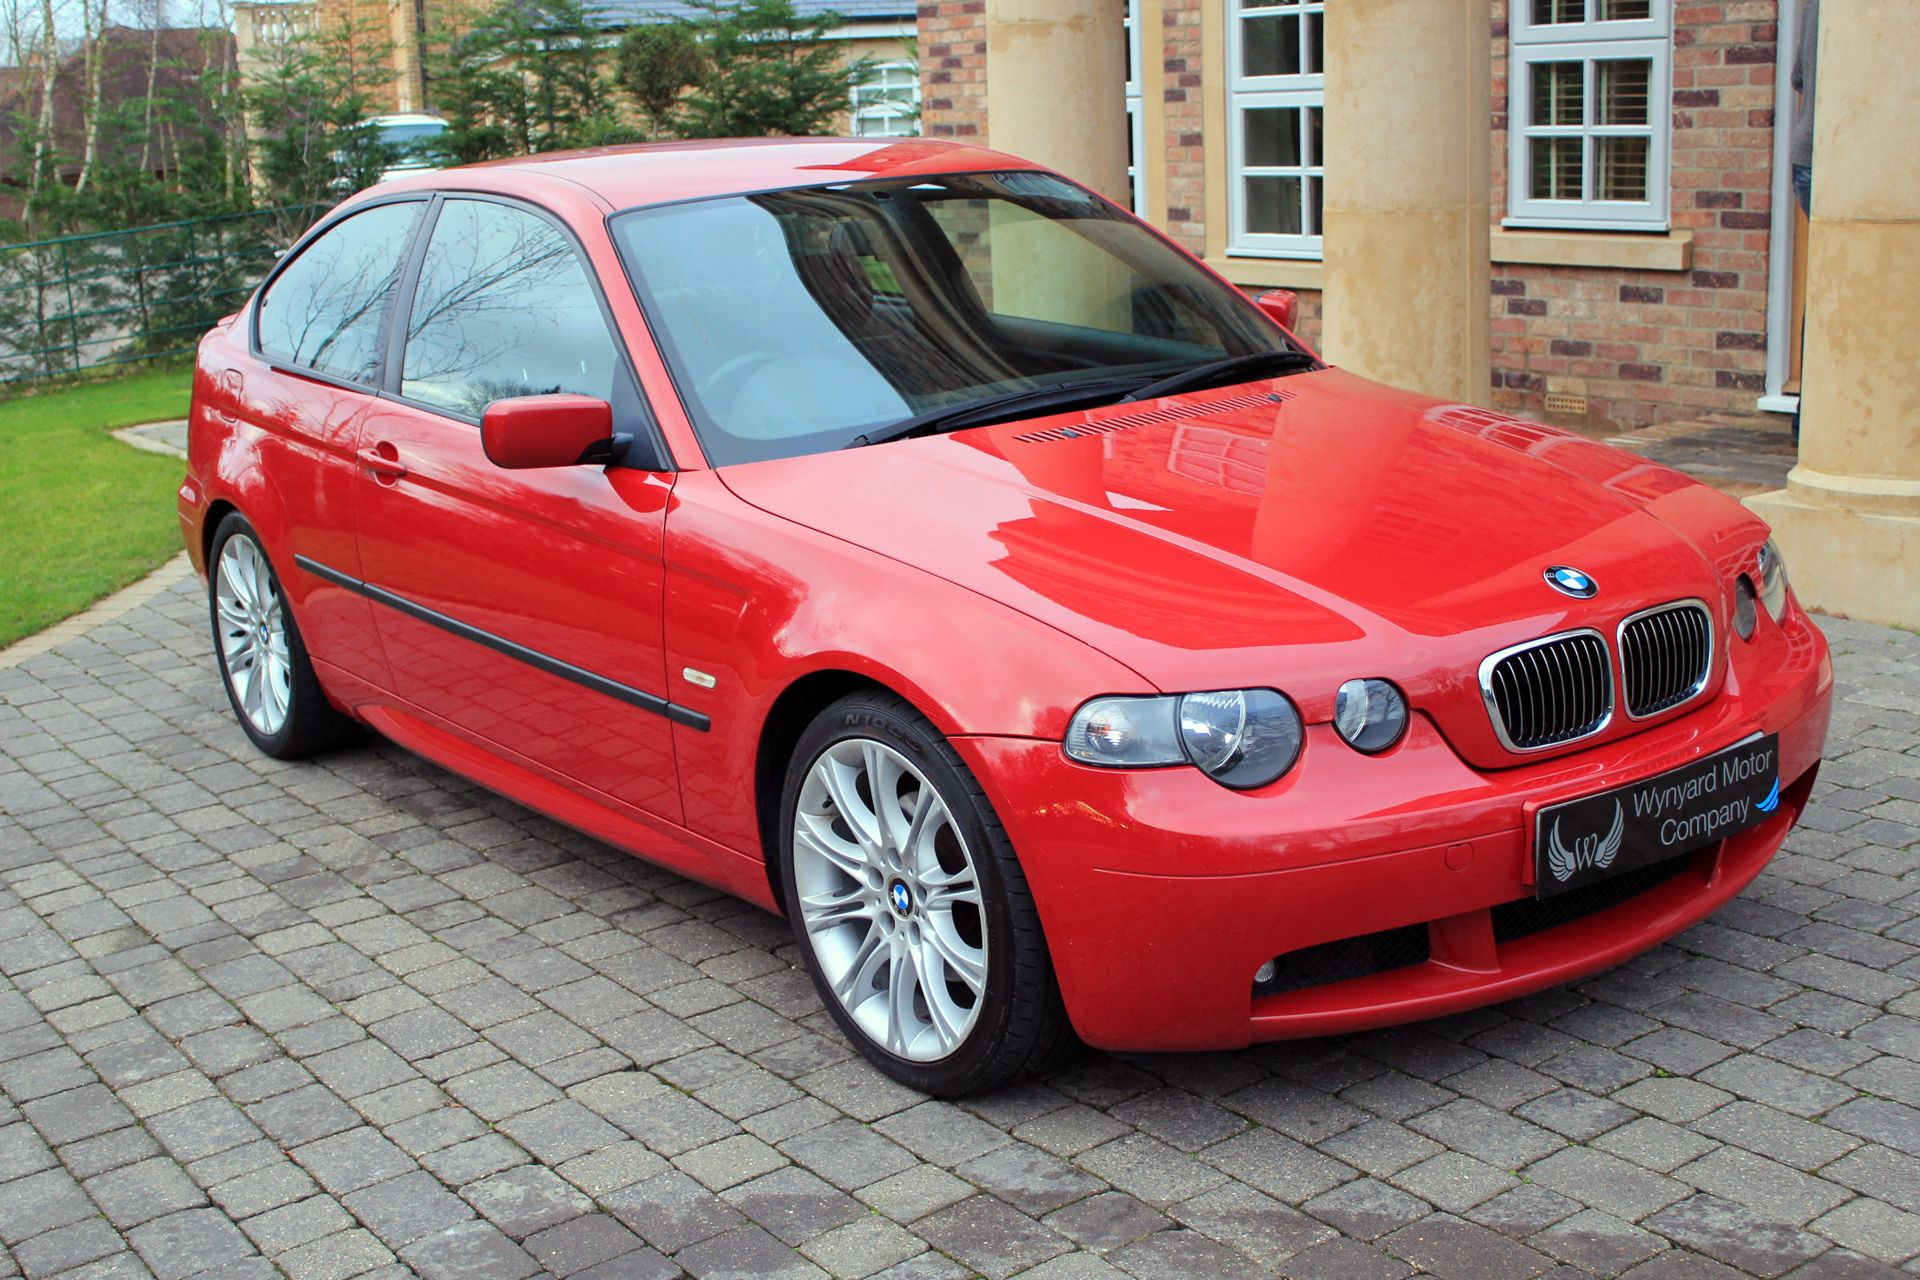 bmw e46 325ti compact bmw pinterest bmw e46 bmw and bmw compact. Black Bedroom Furniture Sets. Home Design Ideas